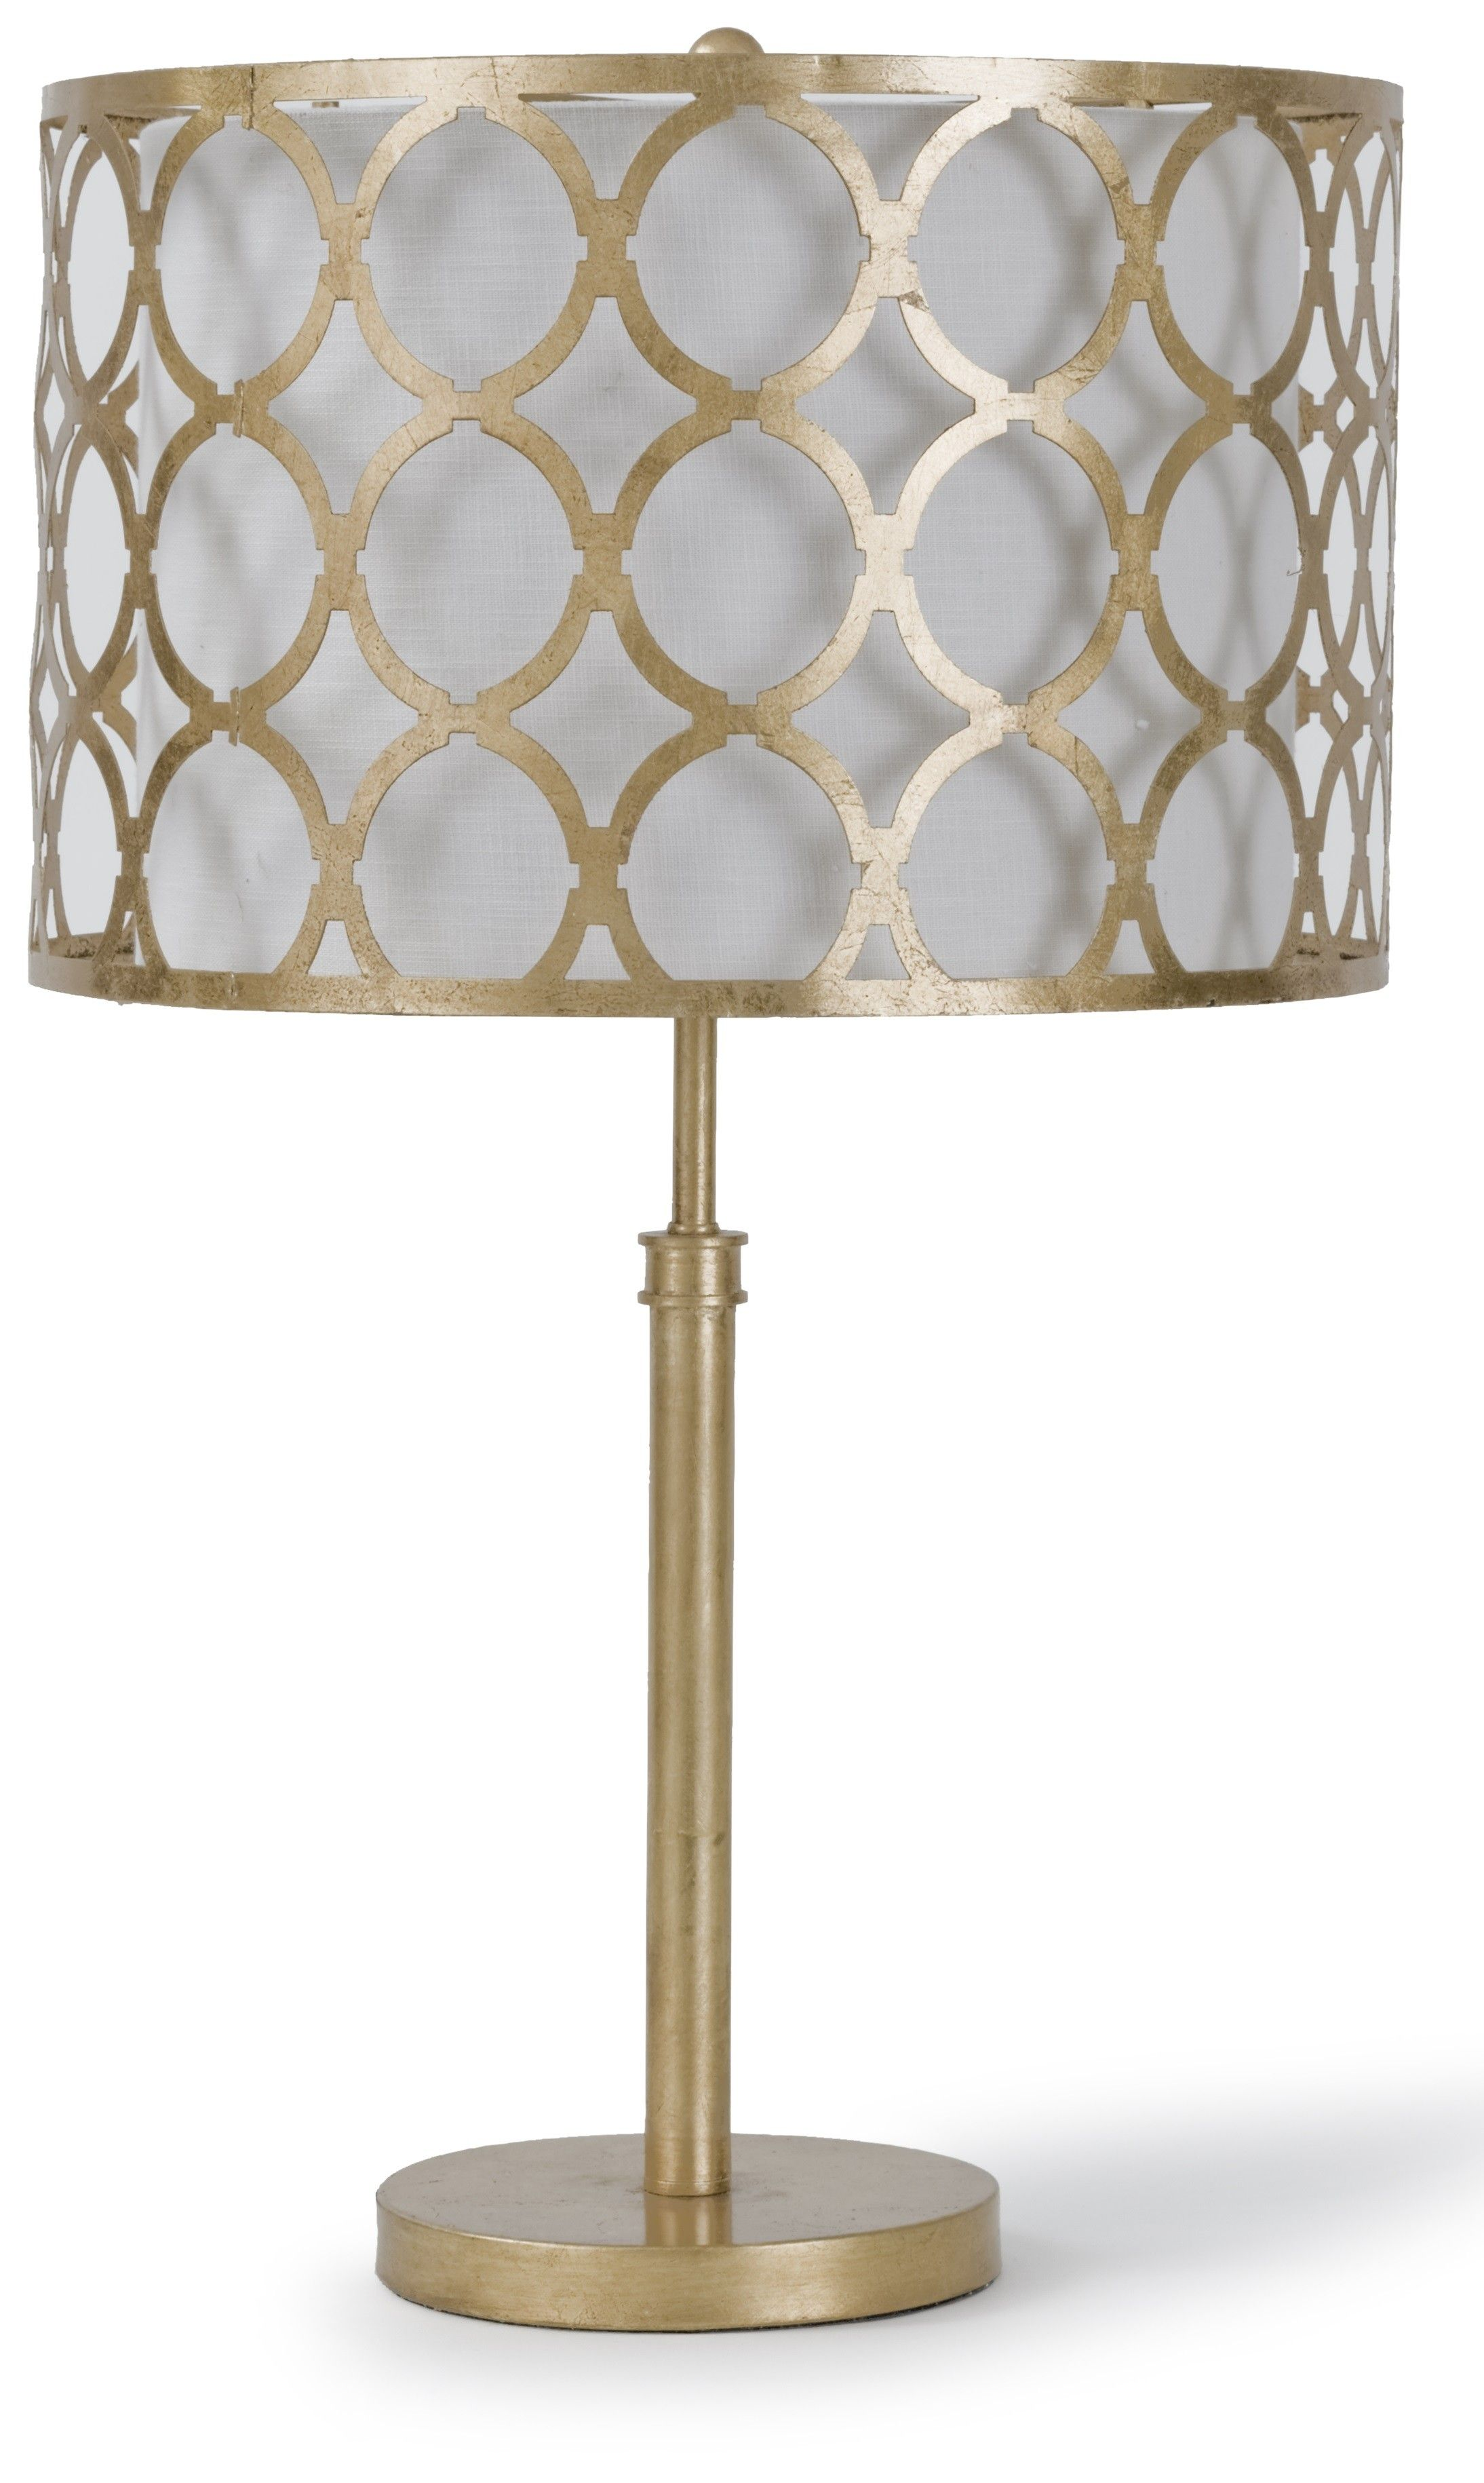 Regina Andrew Gold Metal Table Lamp With Patterned Shade From The Well Appointed House